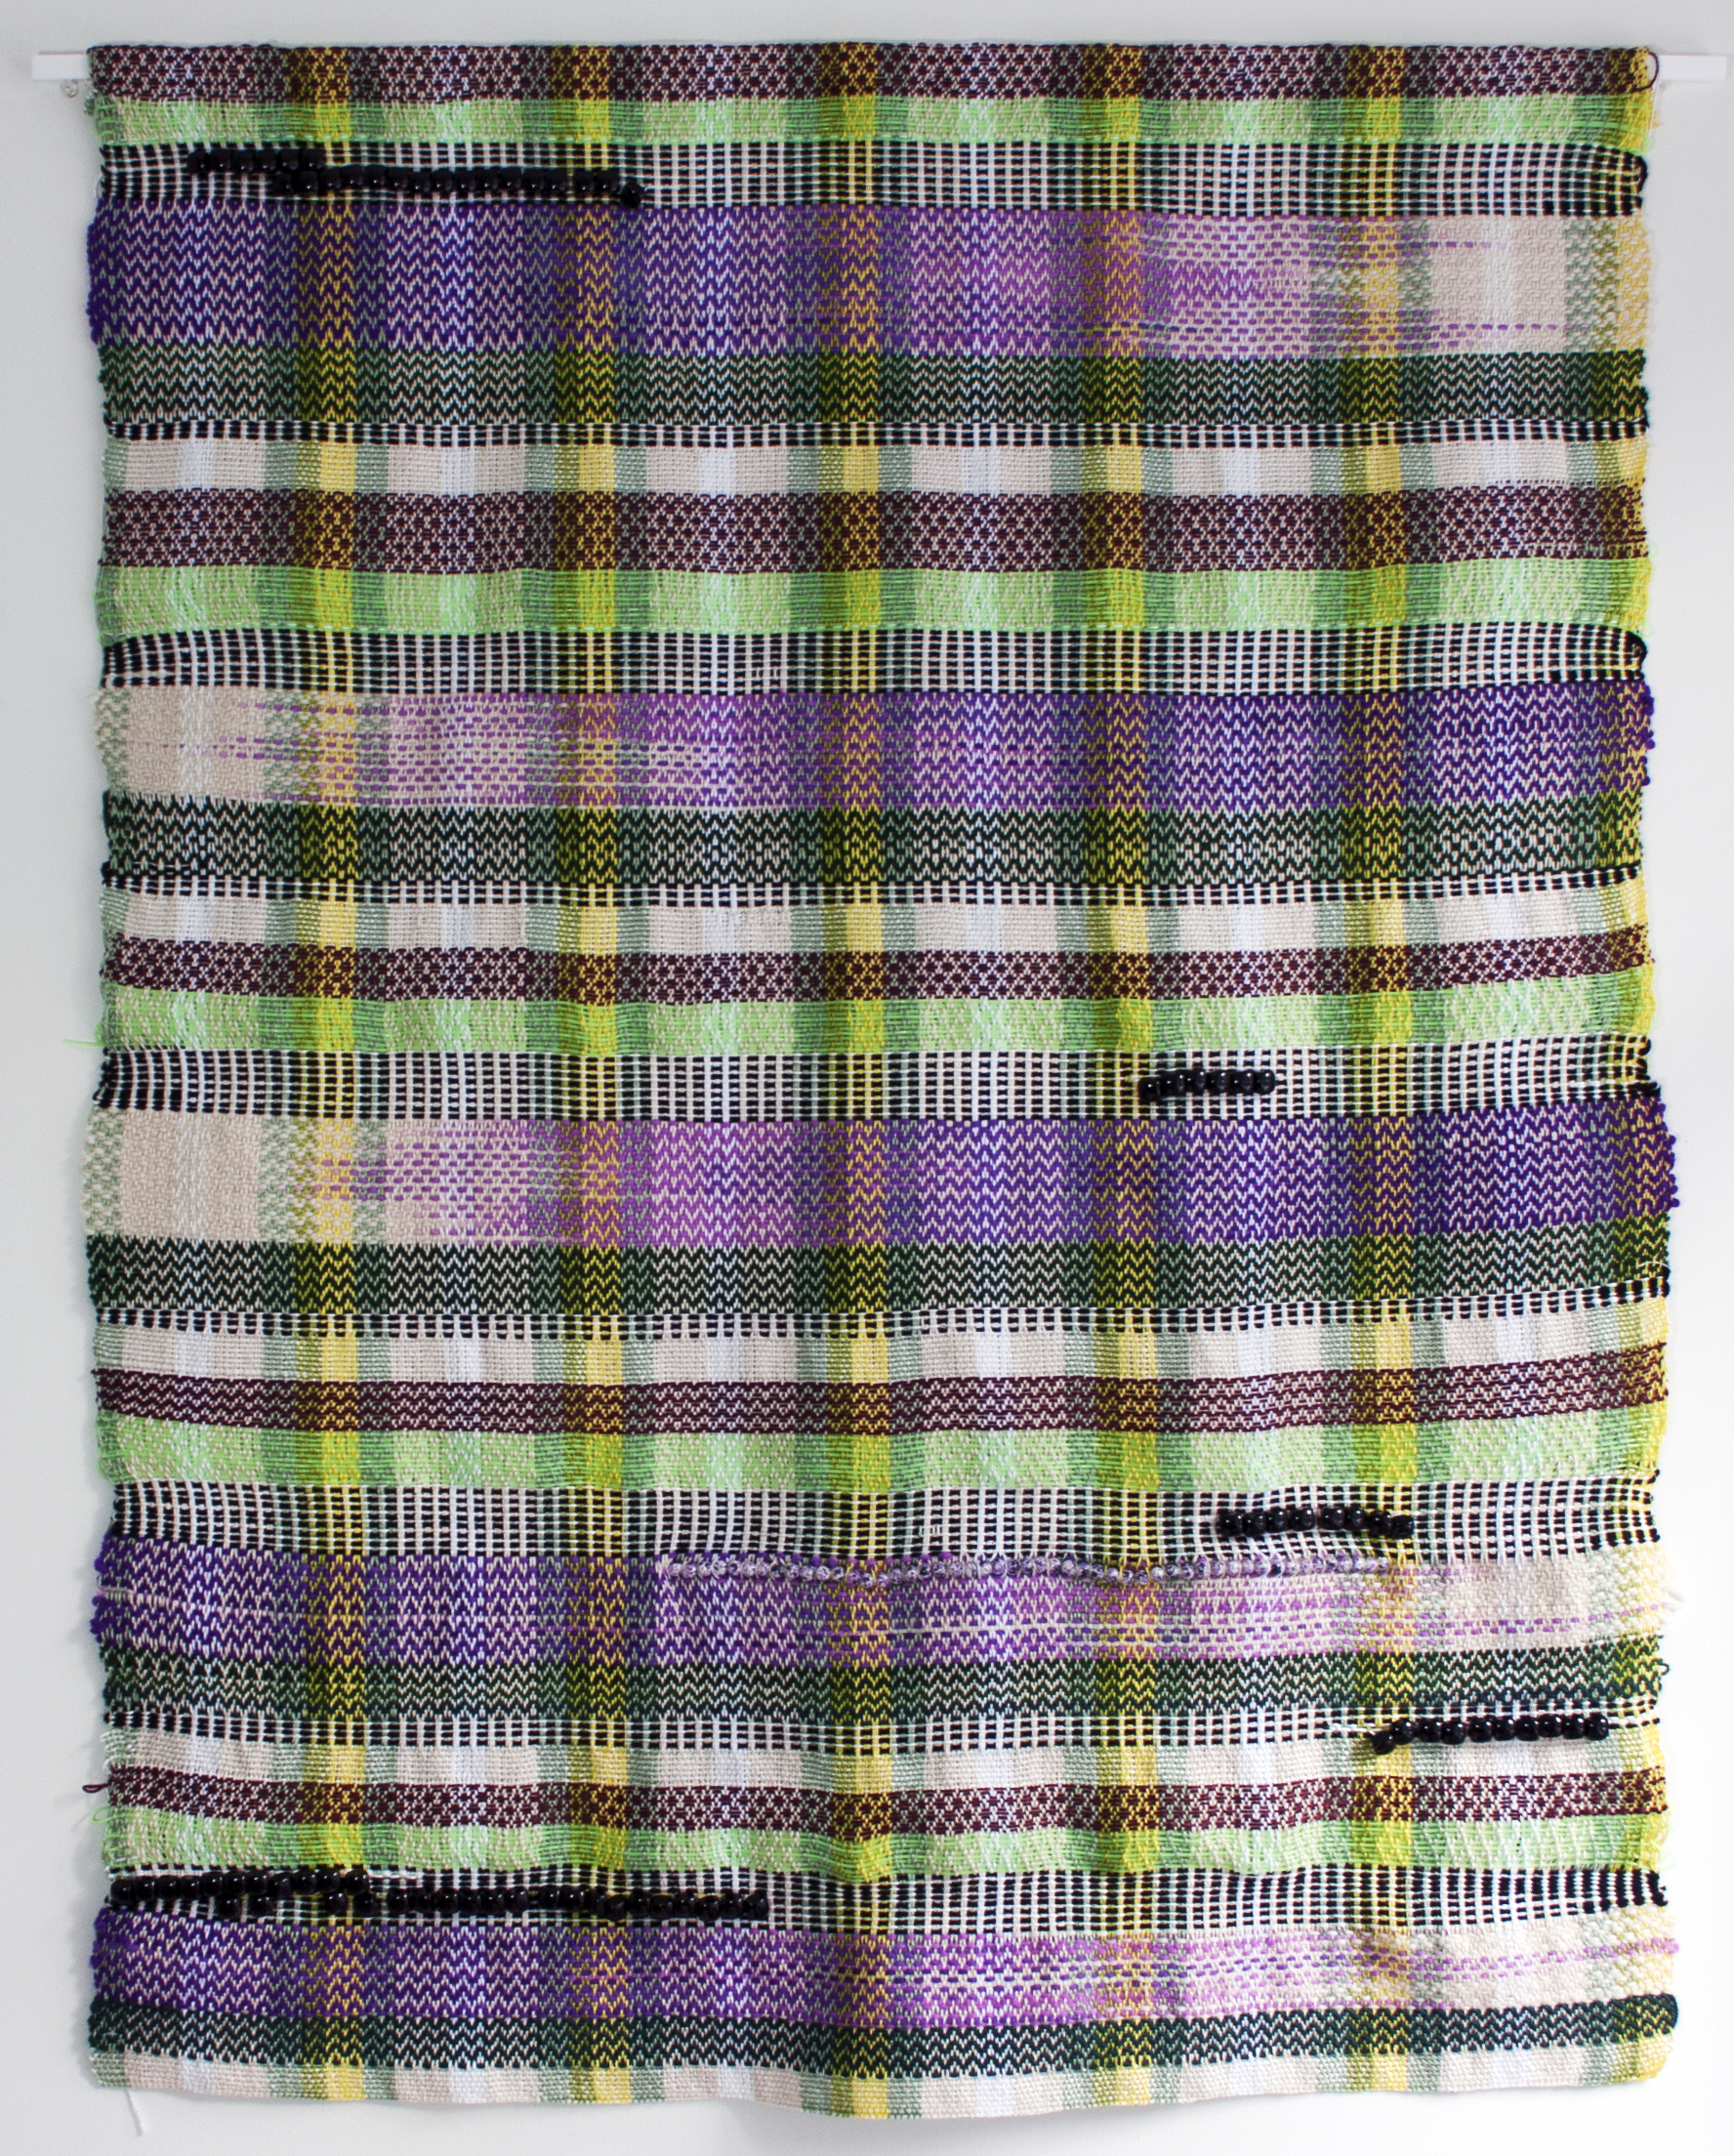 Handwoven tapestry- Mixed yarns, plastic, glass, and beads. 47 x 36 in 2017